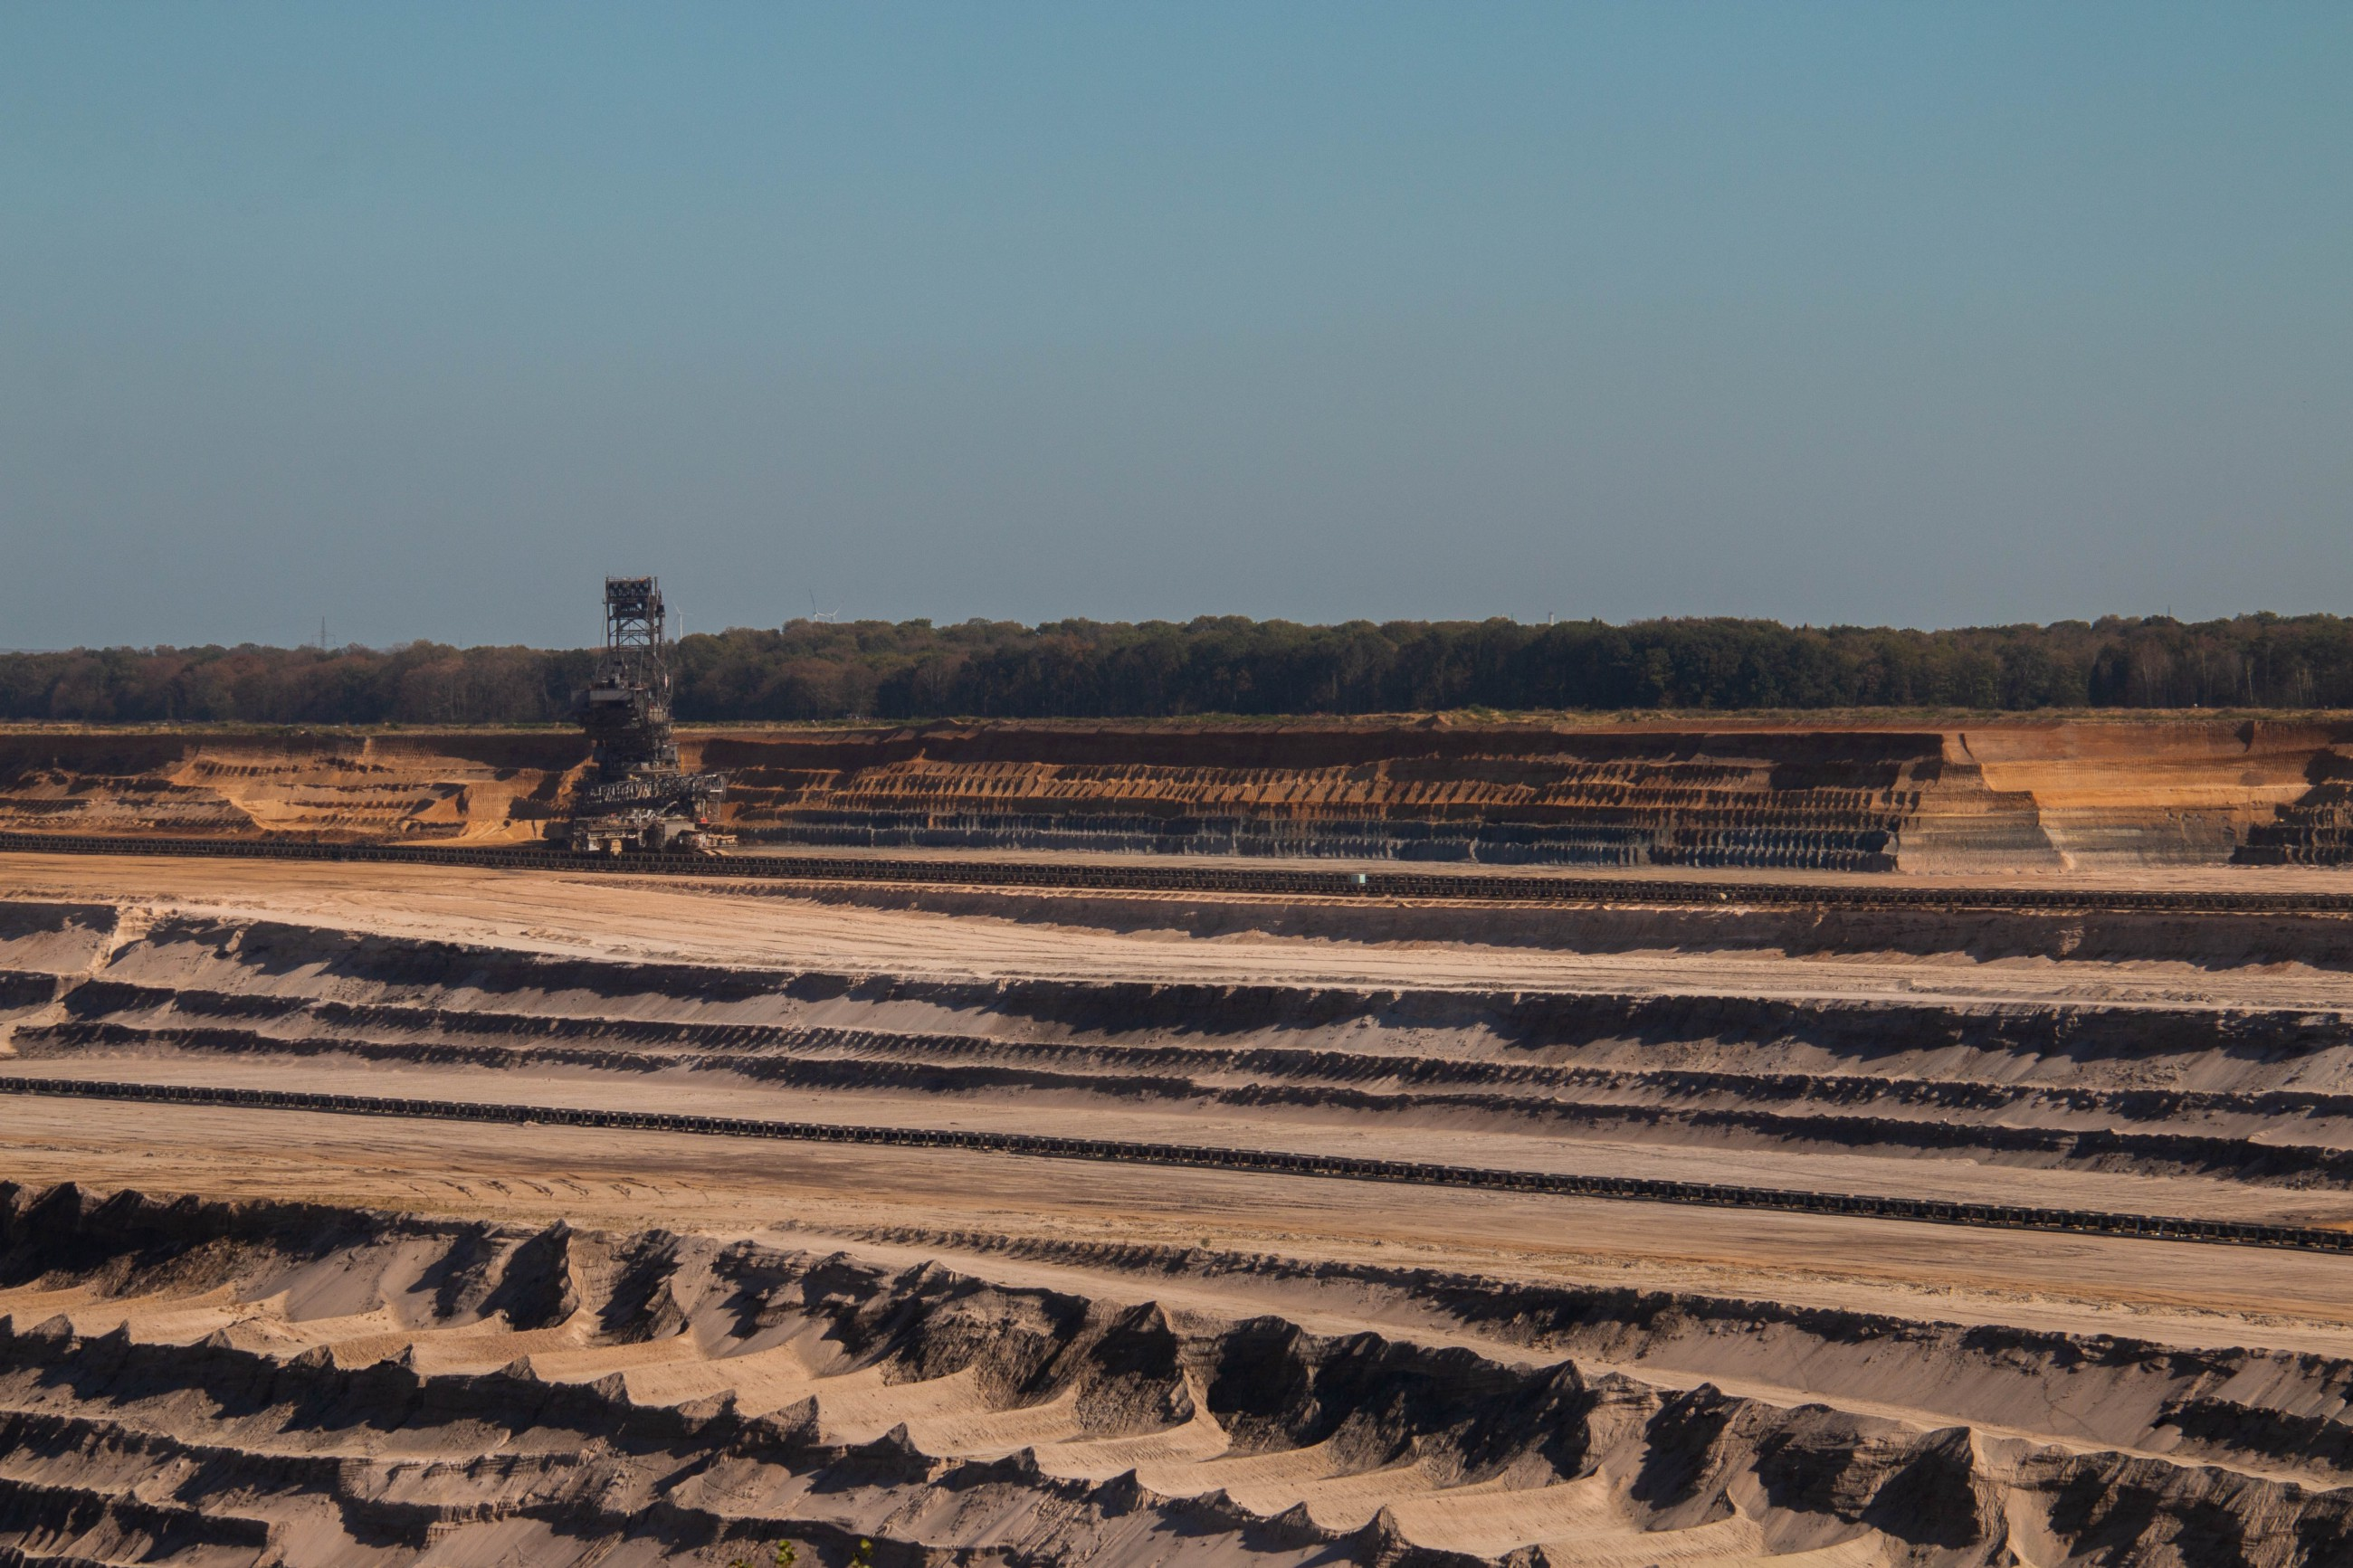 A view of the Hambach Forest from across the Hambach coal mine, with machinery at work.